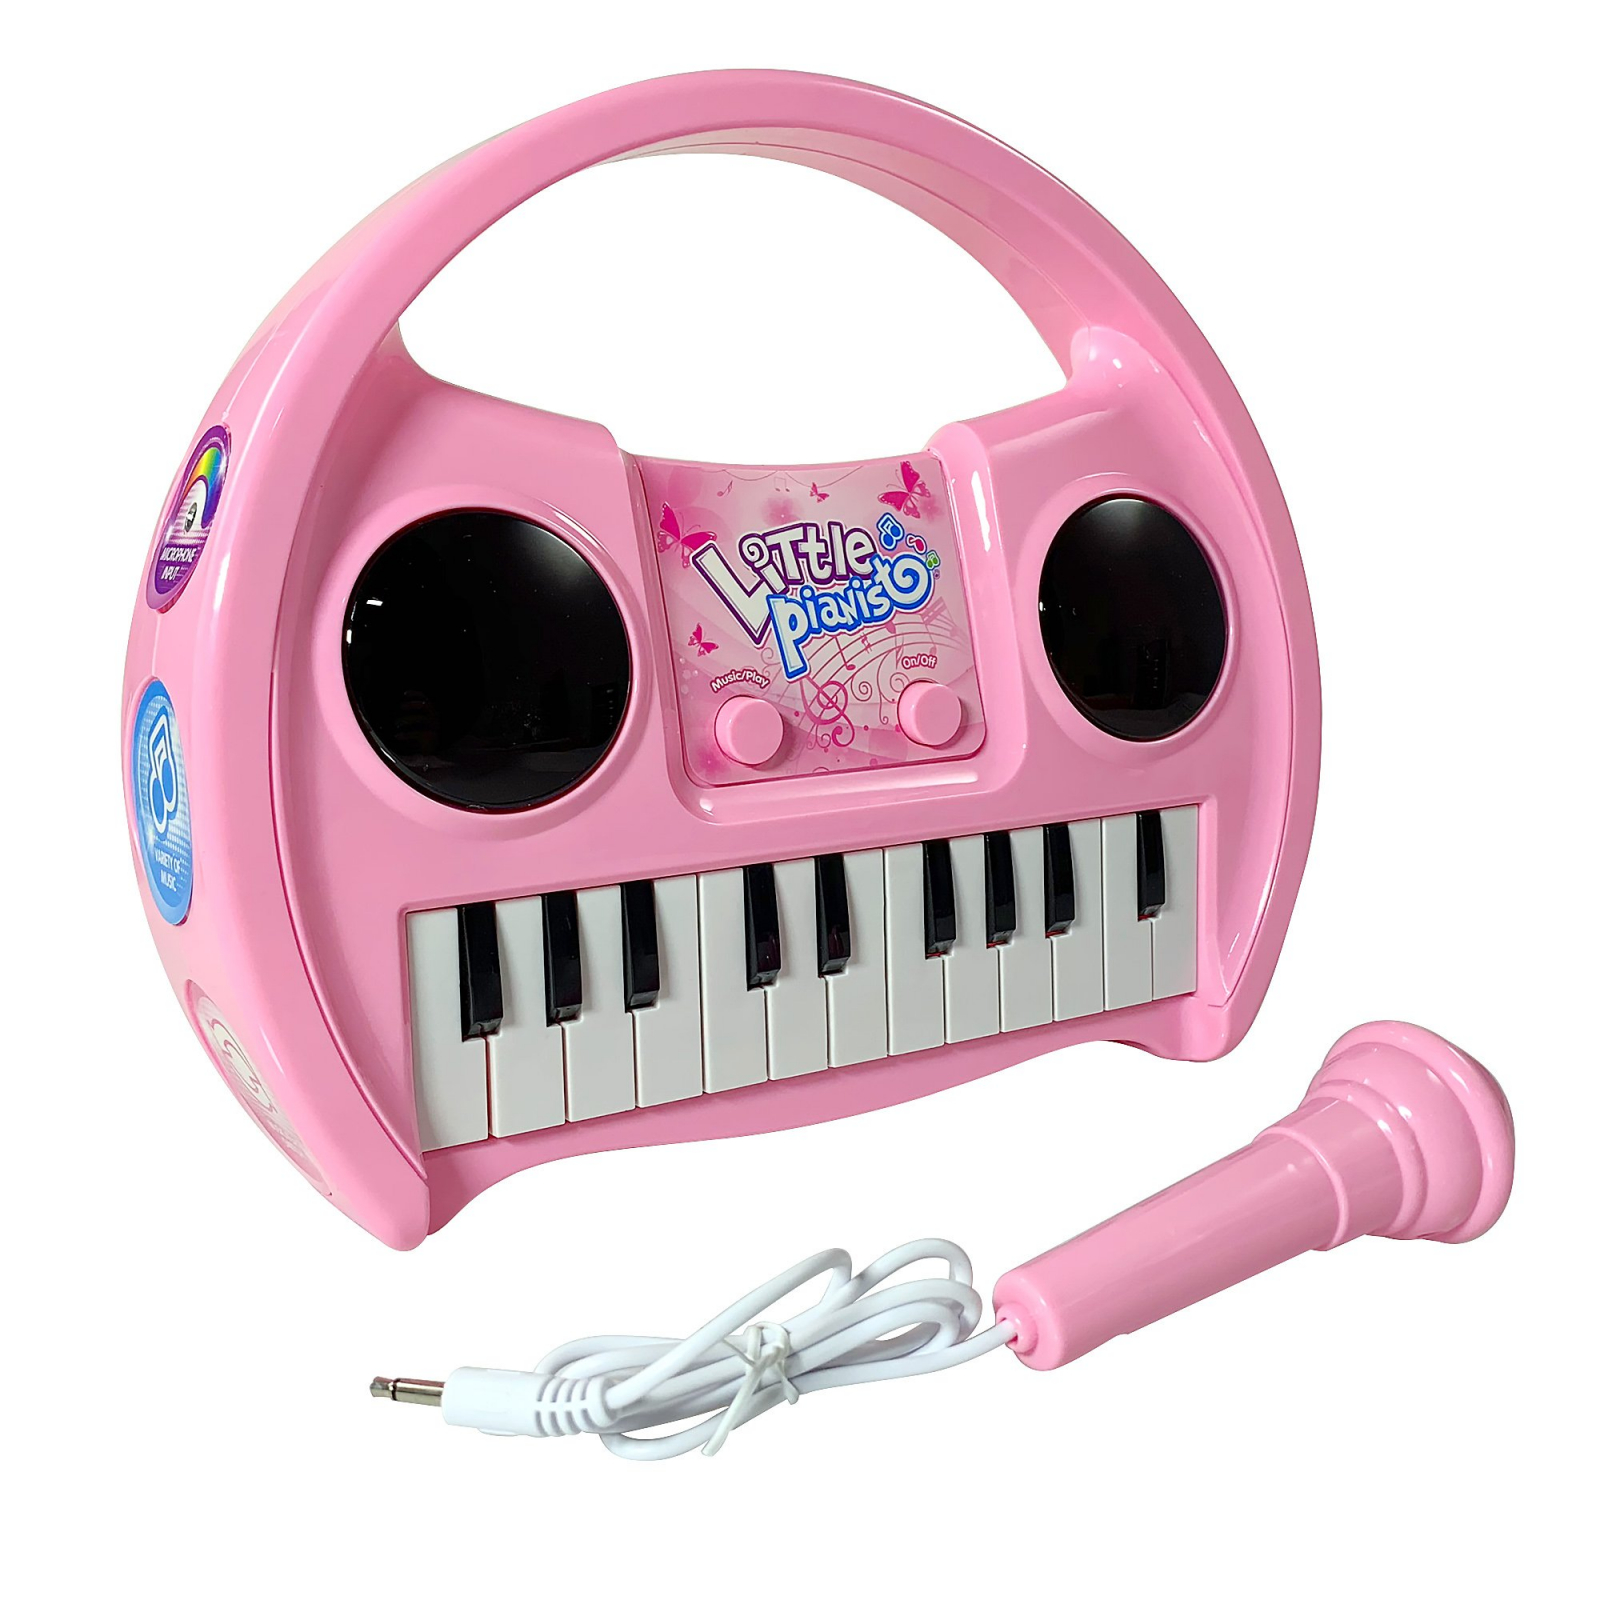 KidPlay Products Little Pianist Singing Musical Karaoke Keyboard Lights Up Pink